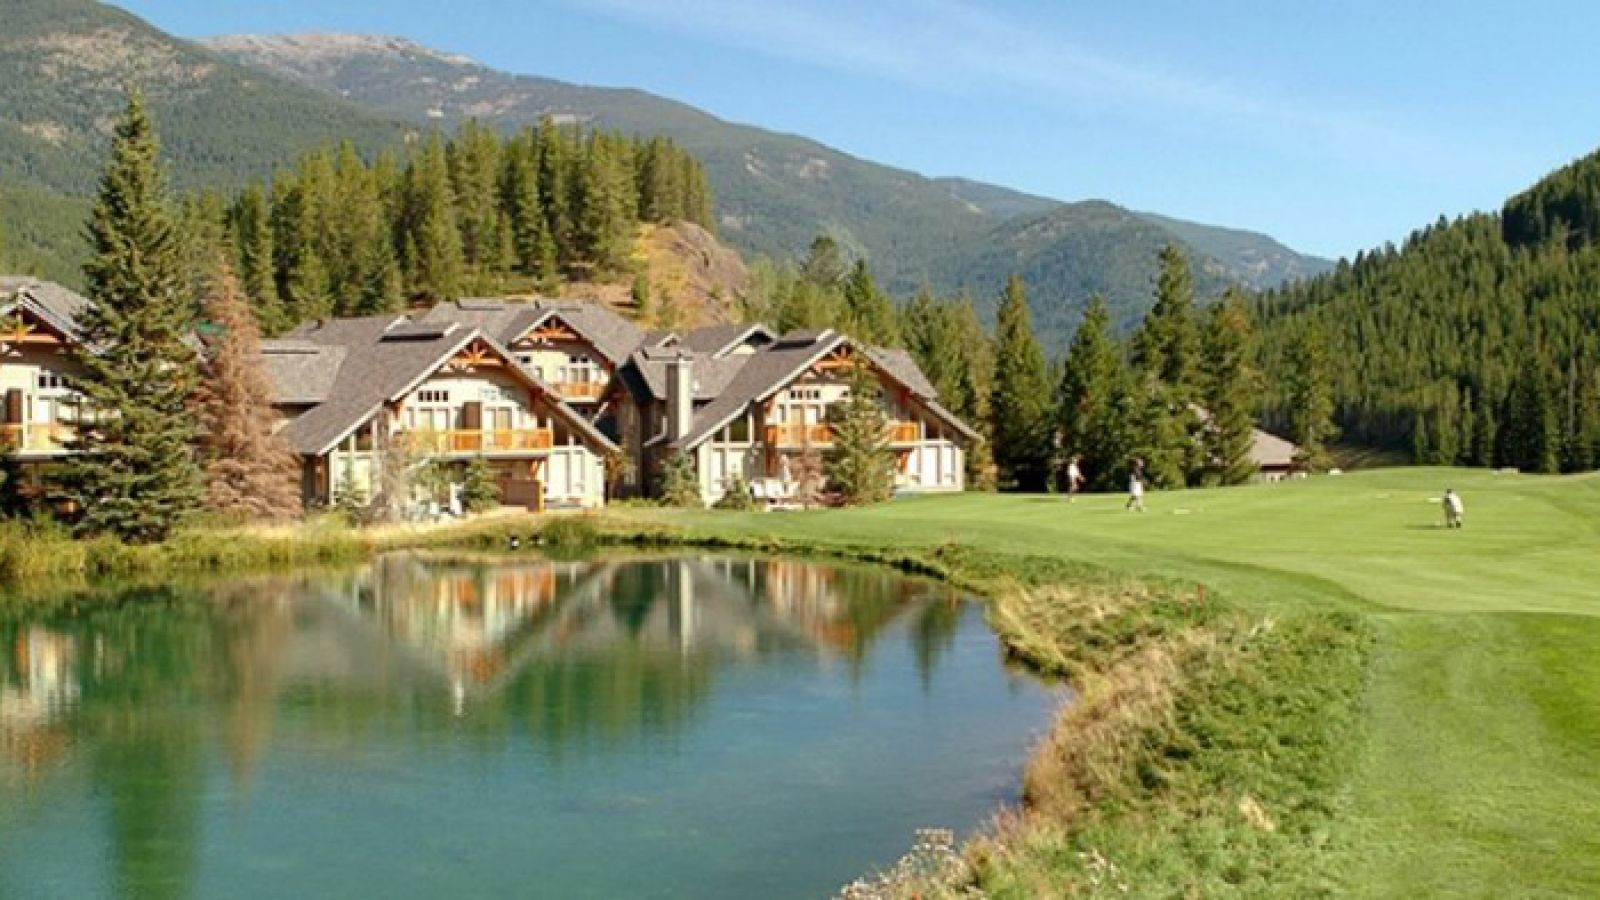 Properties located on mountain and at Greywolf.